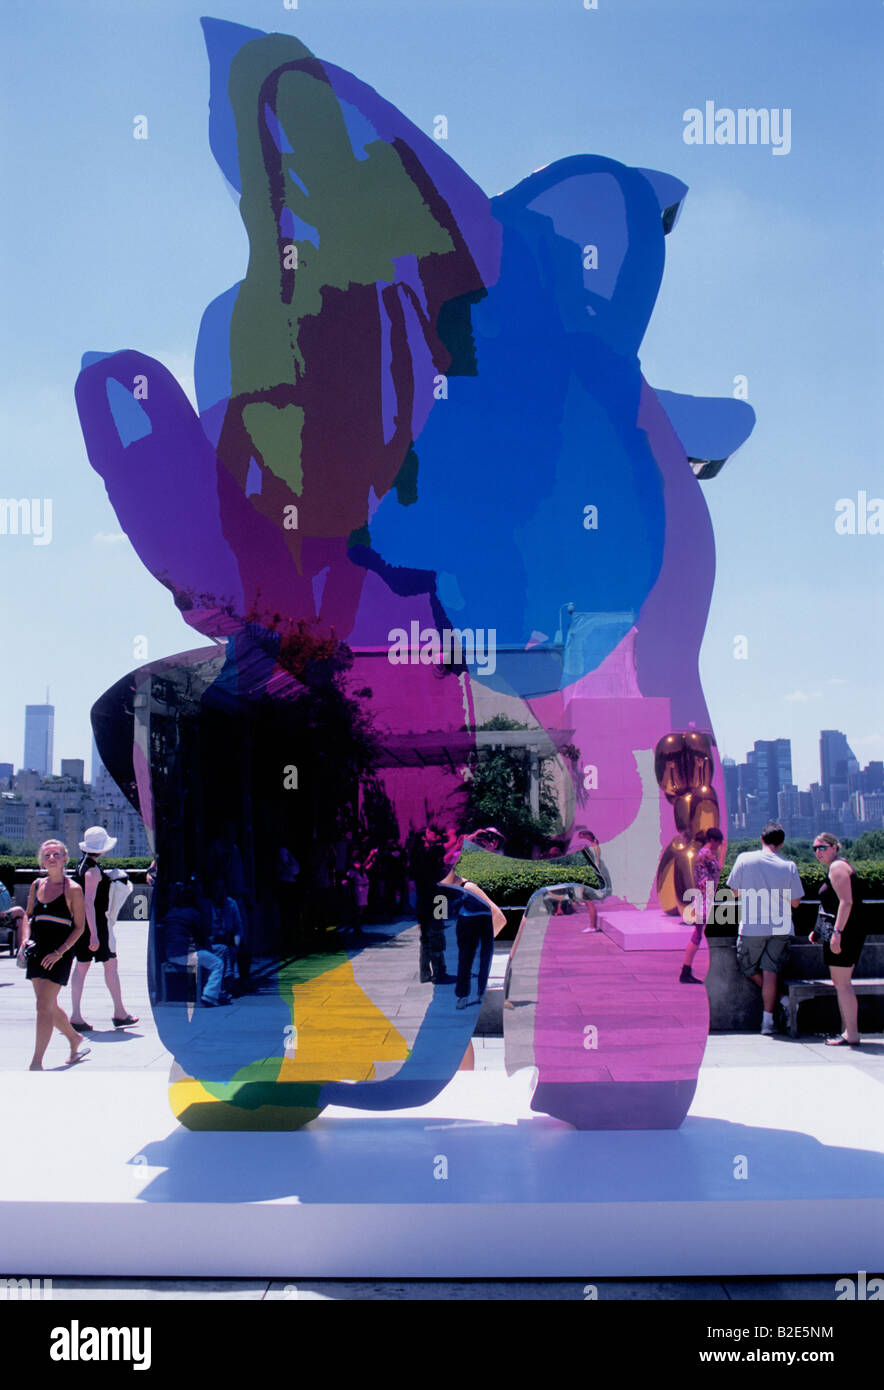 Coloring book by jeff koons - New York City Jeff Koons Sculpture At The Metropolitan Museum Of Art Roof Garden Usa